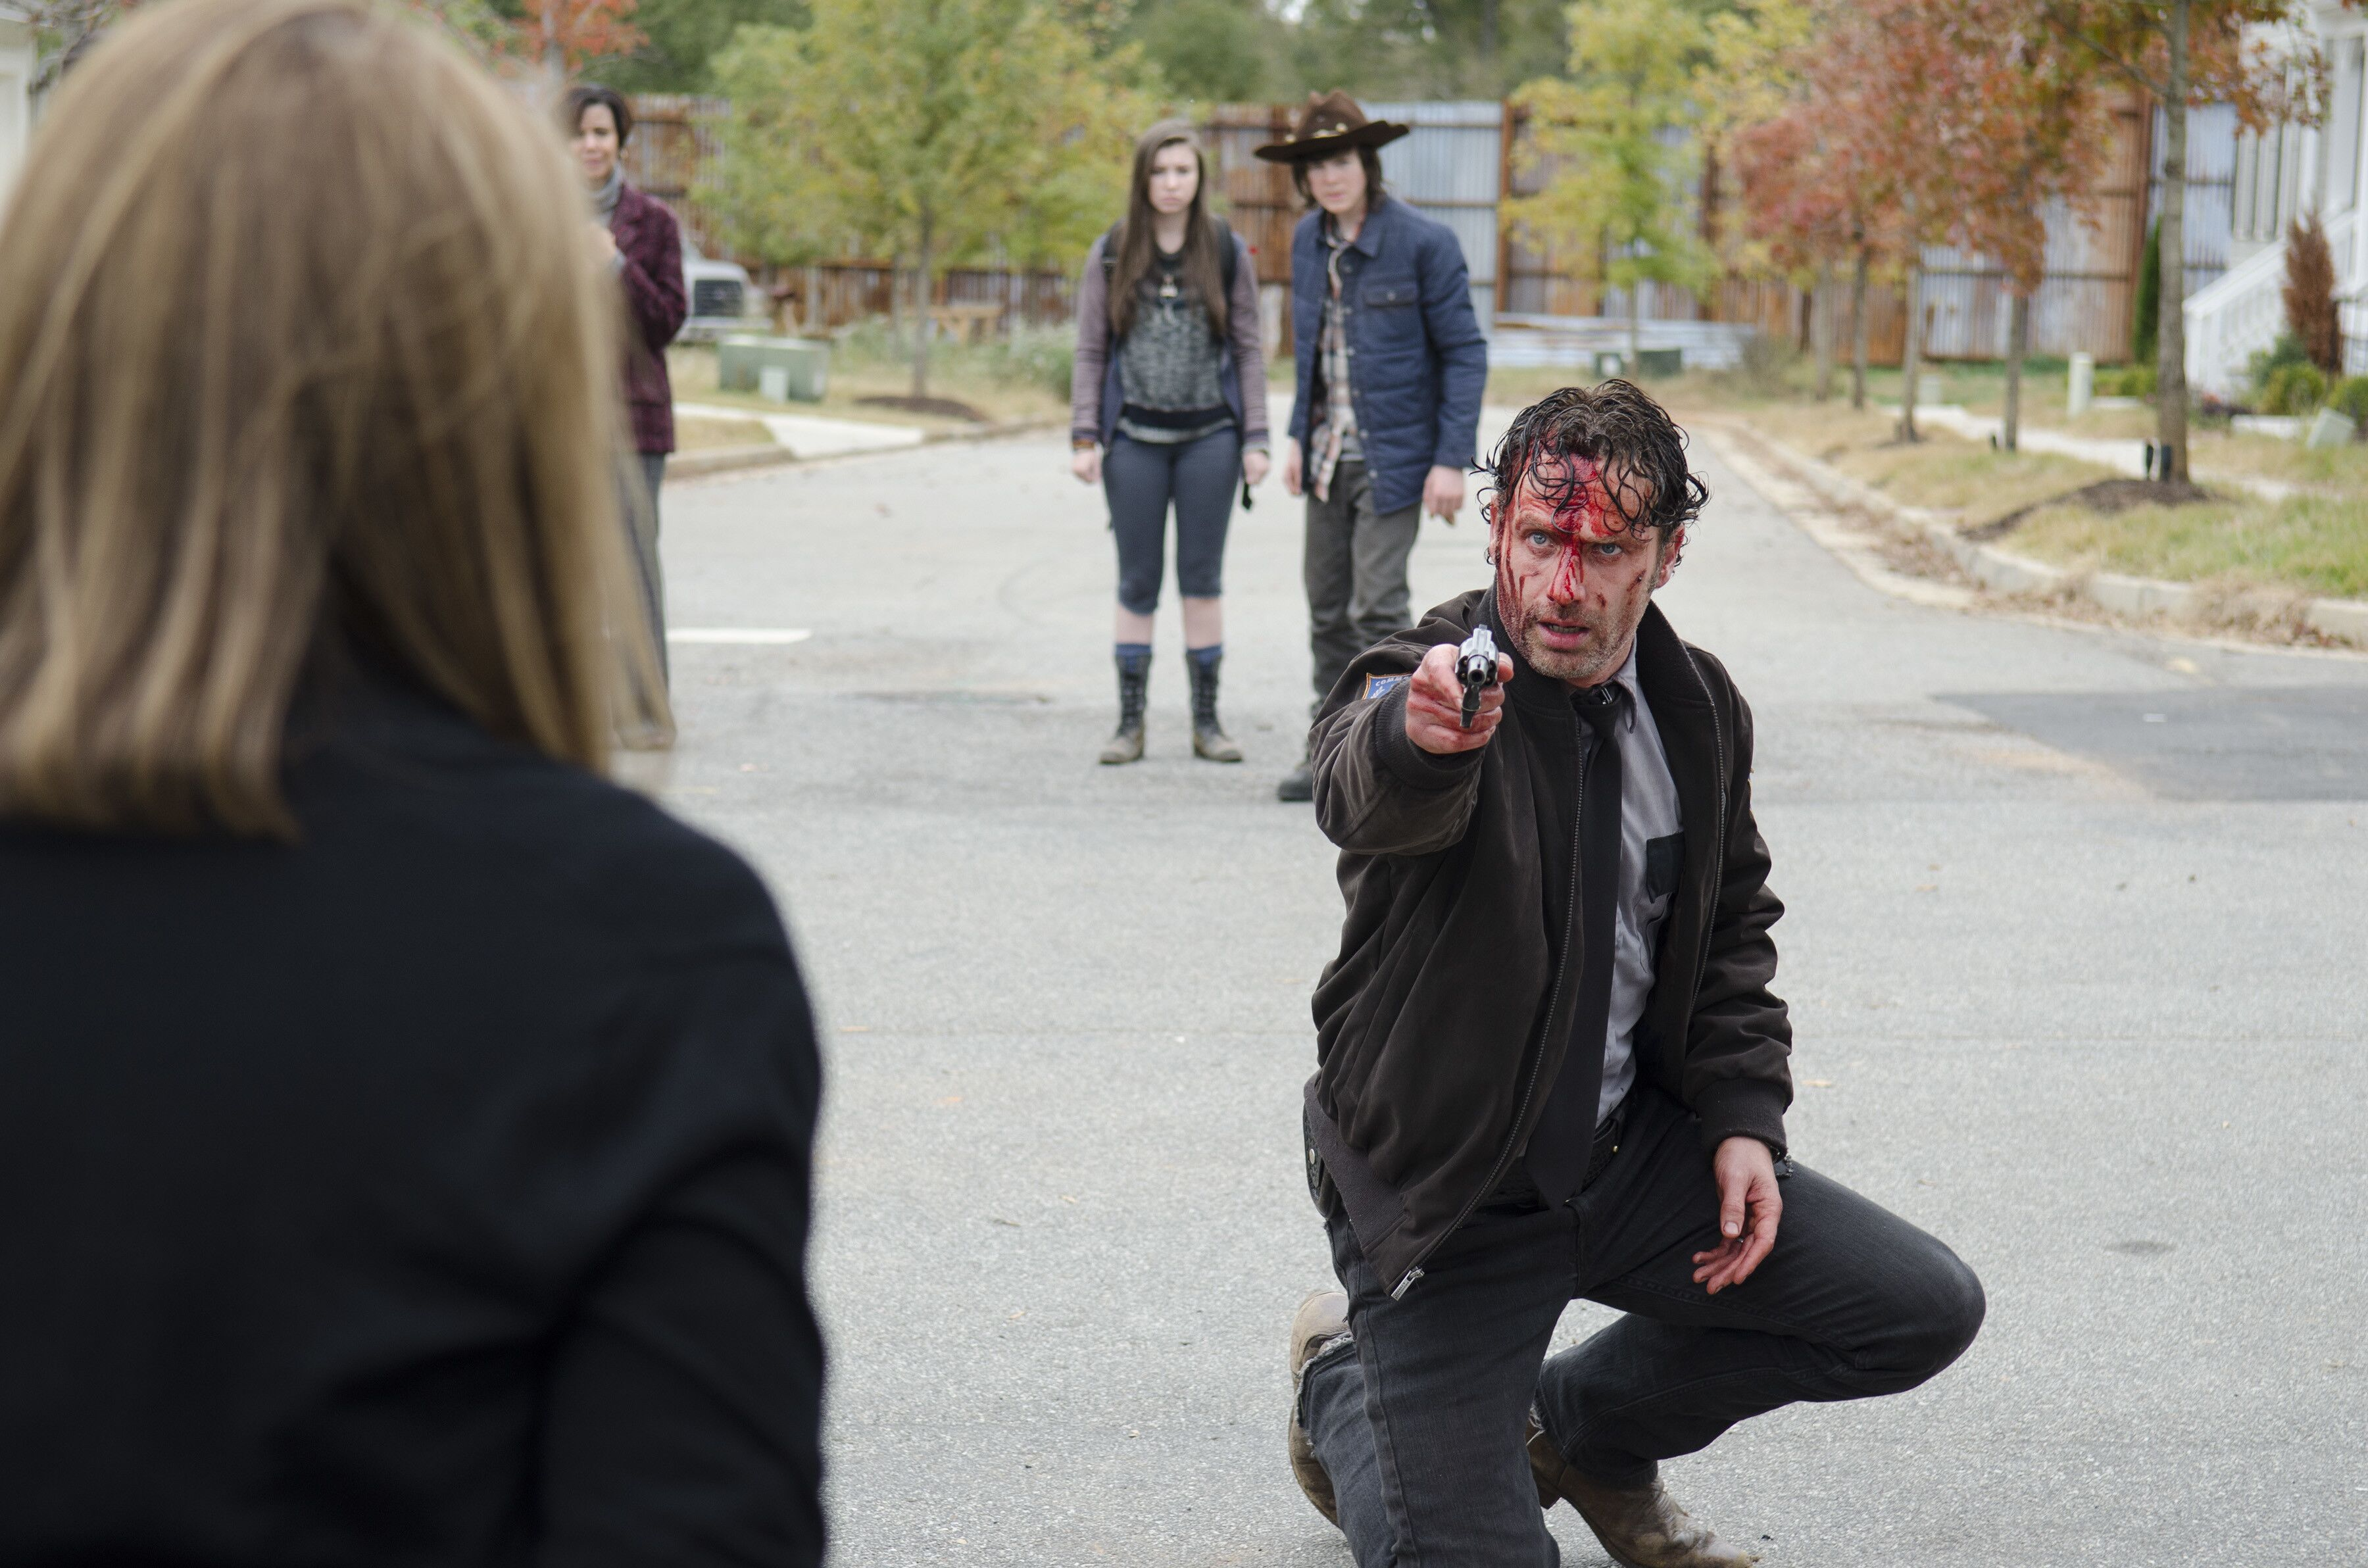 TWD3 Opinion: Chandler Riggs and Katelyn Nacon should host a new Talking Dead